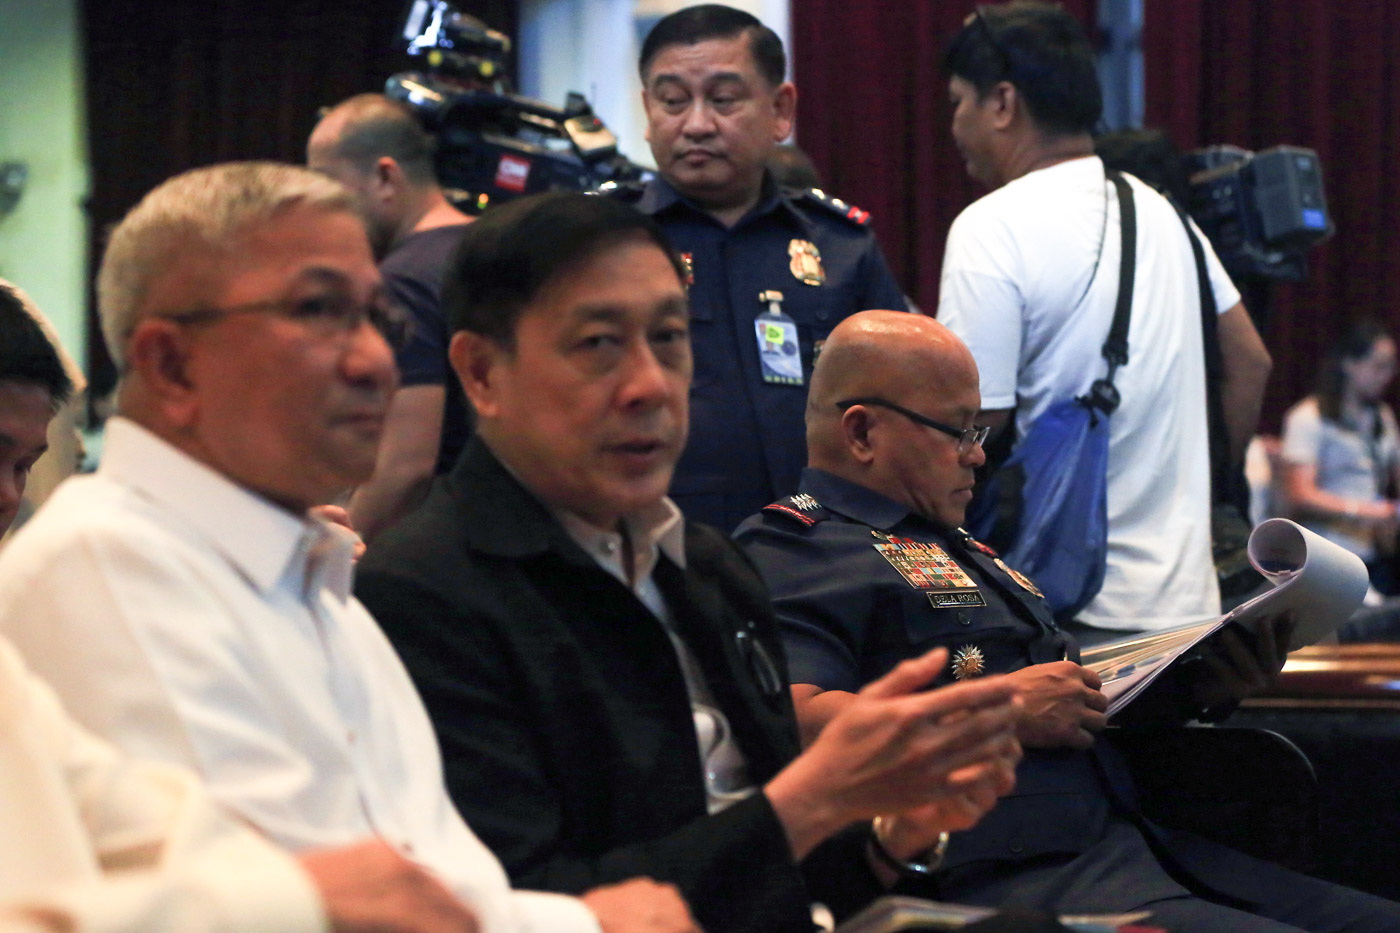 RESOURCE PERSONS. PDEA Chief General Aaron Aquino (in white) and PNP Chief General Ronald u0022Batou0022 dela Rosa are invited as resource persons during the oral arguments on November 28, 2017. Photo by Ben Nabong/Rappler